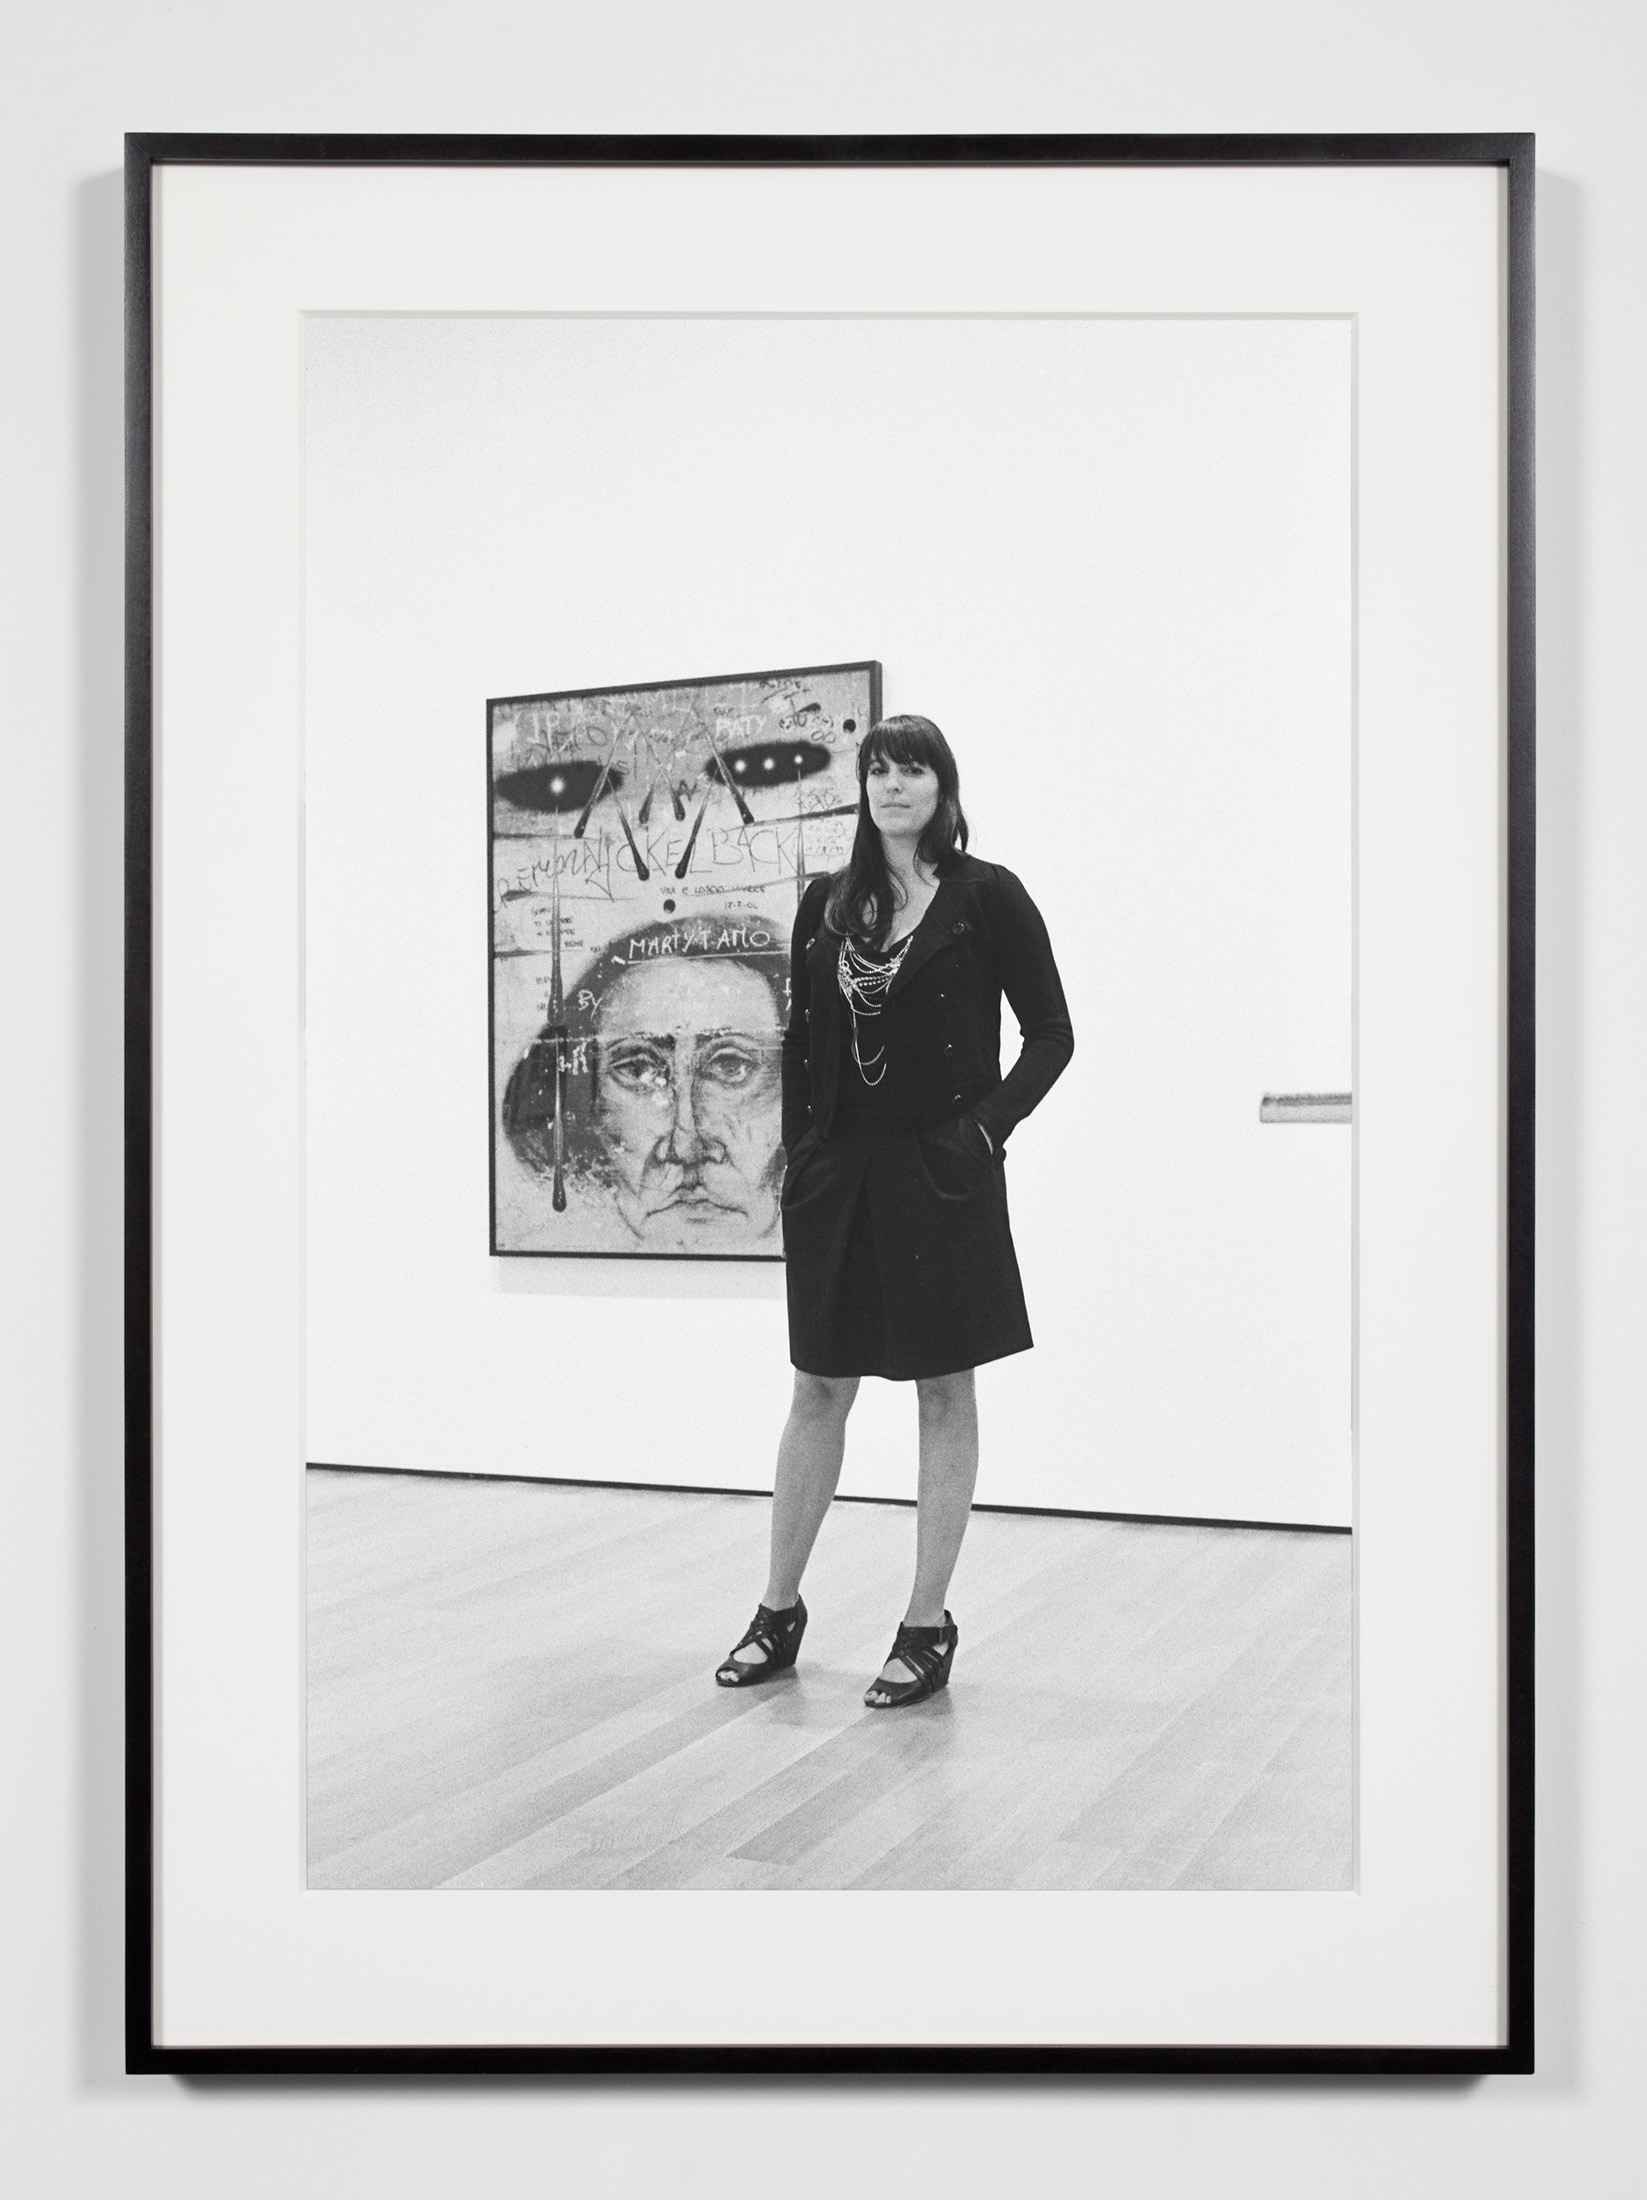 Museum Associate Curator, New York, New York, September 26, 2009    2011   Epson Ultrachrome K3 archival ink jet print on Hahnemühle Photo Rag paper  36 3/8 x 26 3/8 inches   Industrial Portraits, 2008–